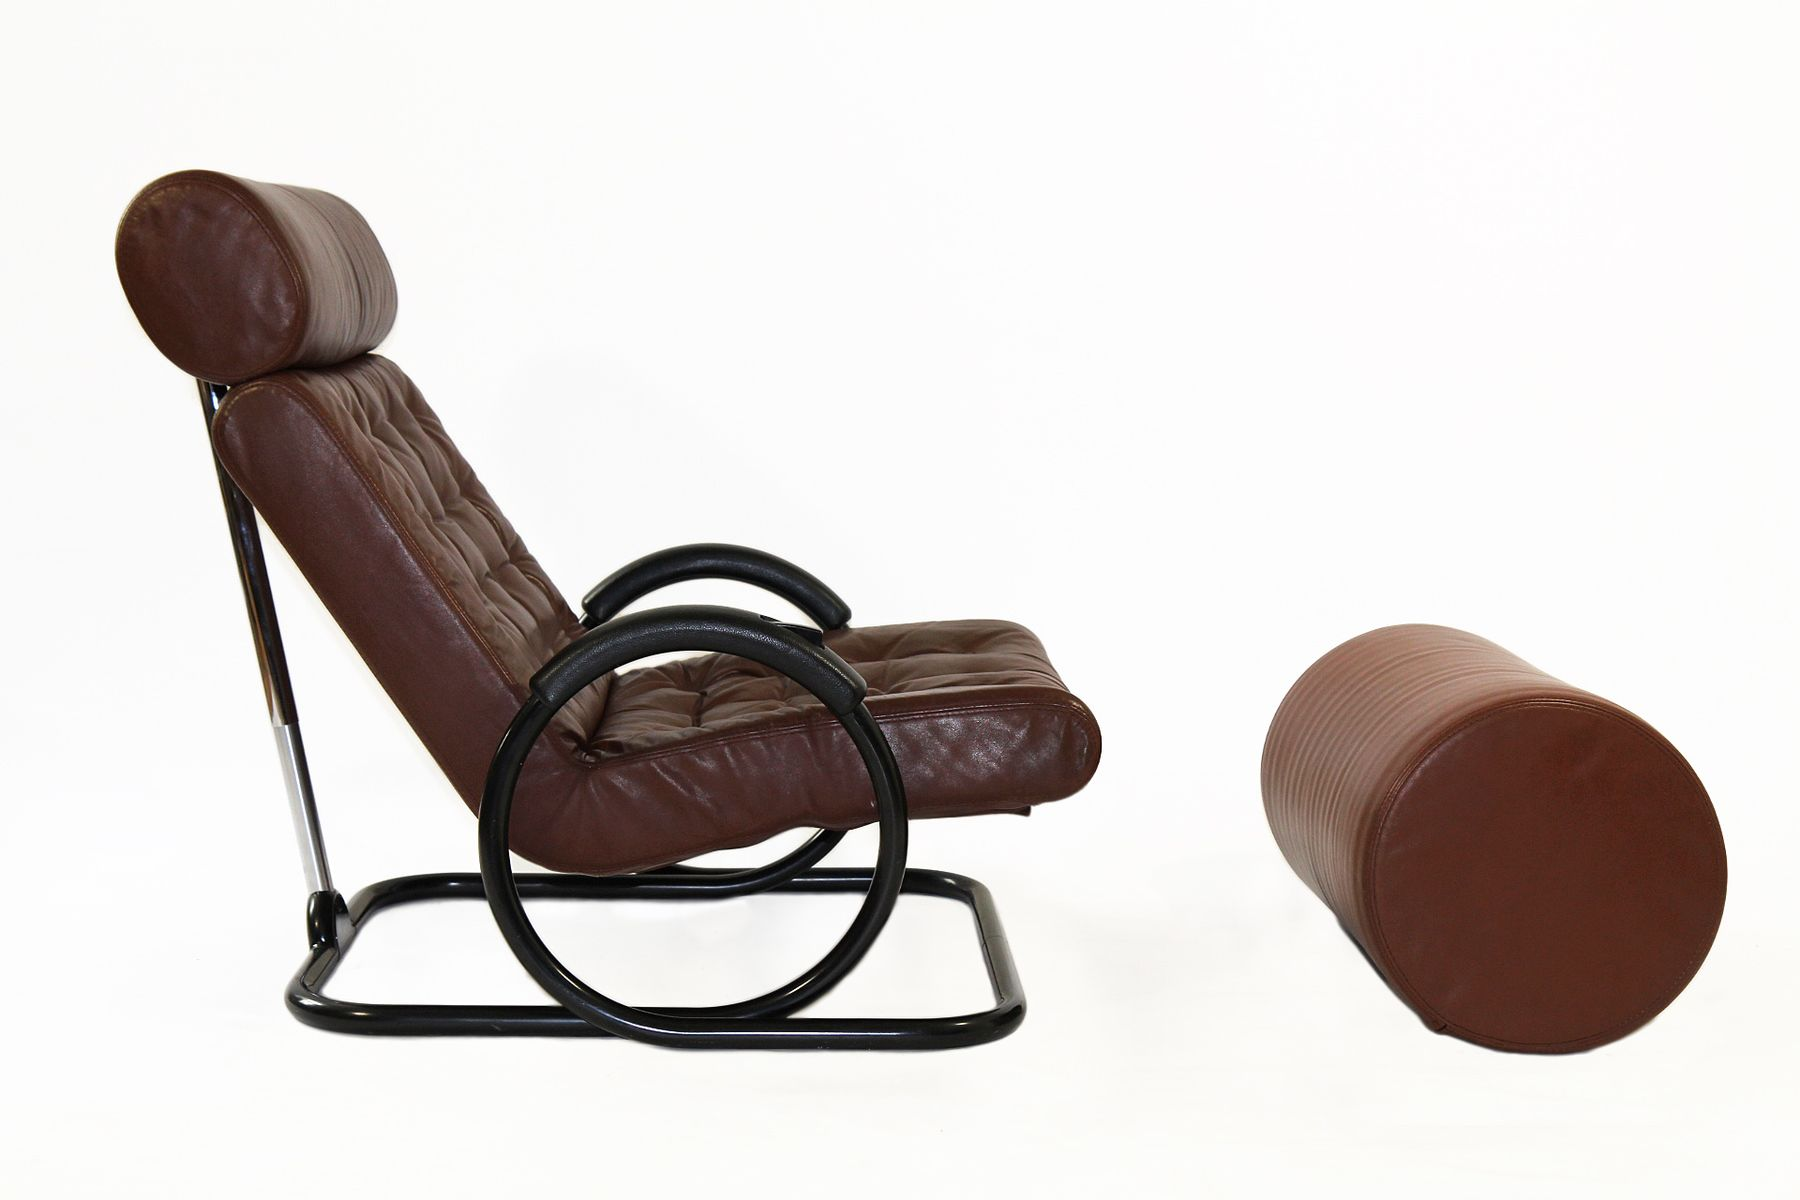 Synchro Chair and Ottoman by Prototeam for Herman Miller Co 1975